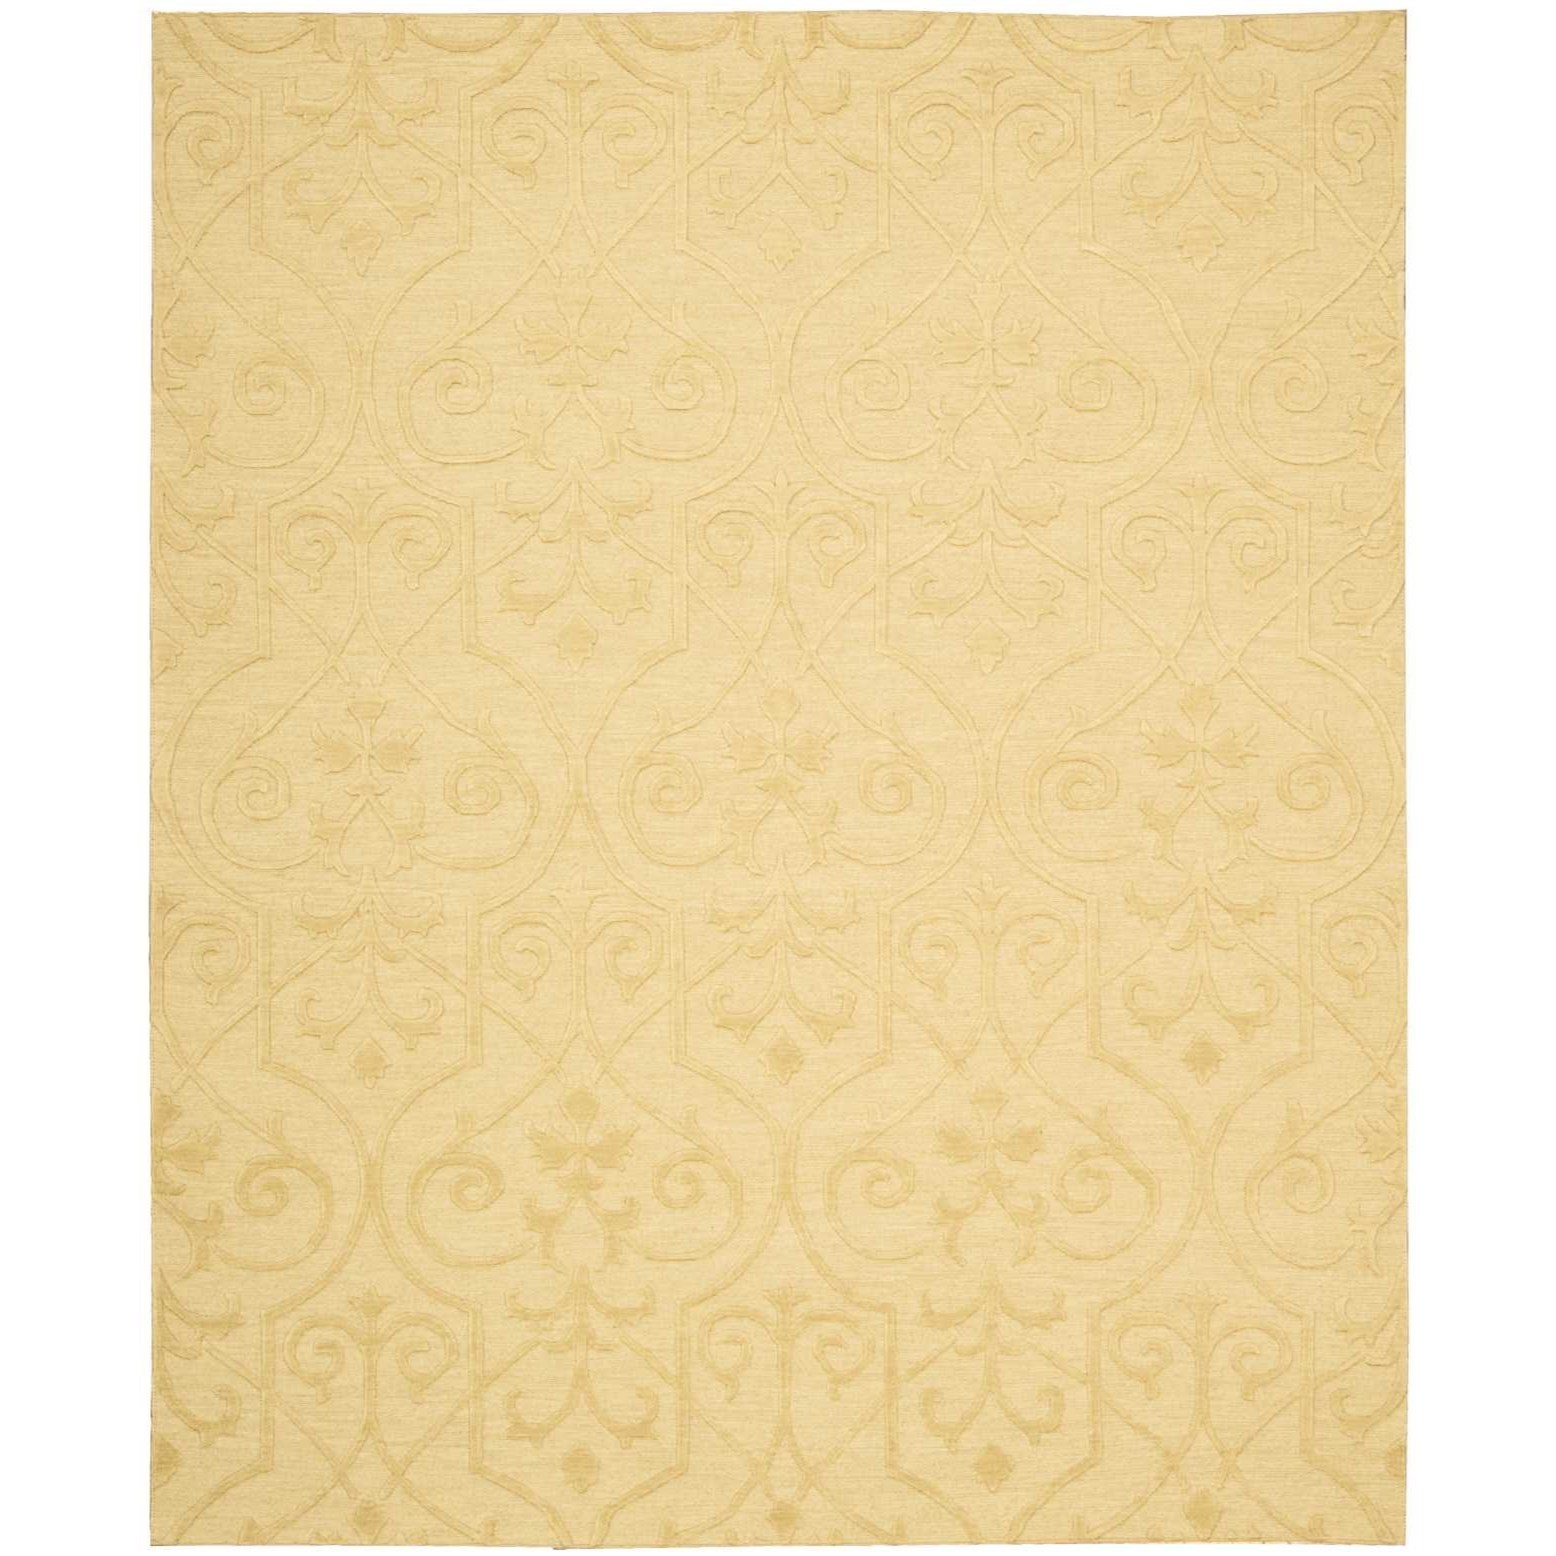 """Ambrose 8'6"""" x 11'6"""" Straw Rectangle Rug by Nourison at Home Collections Furniture"""